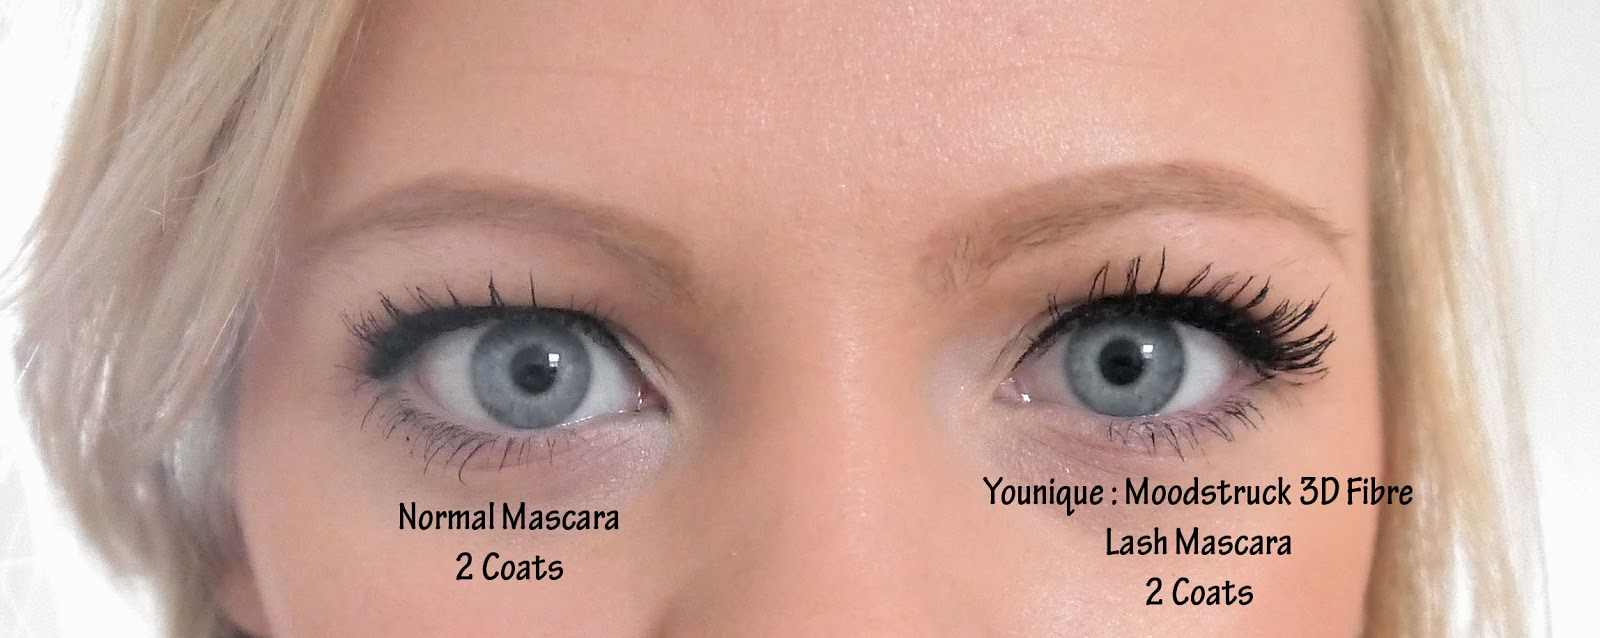 Younique Moodstuck 3D fiber lashes , Mascara Review , Younique Moodstuck 3D fiber lashes review ,  3D fiber lash mascara , makeup review, beauty blog